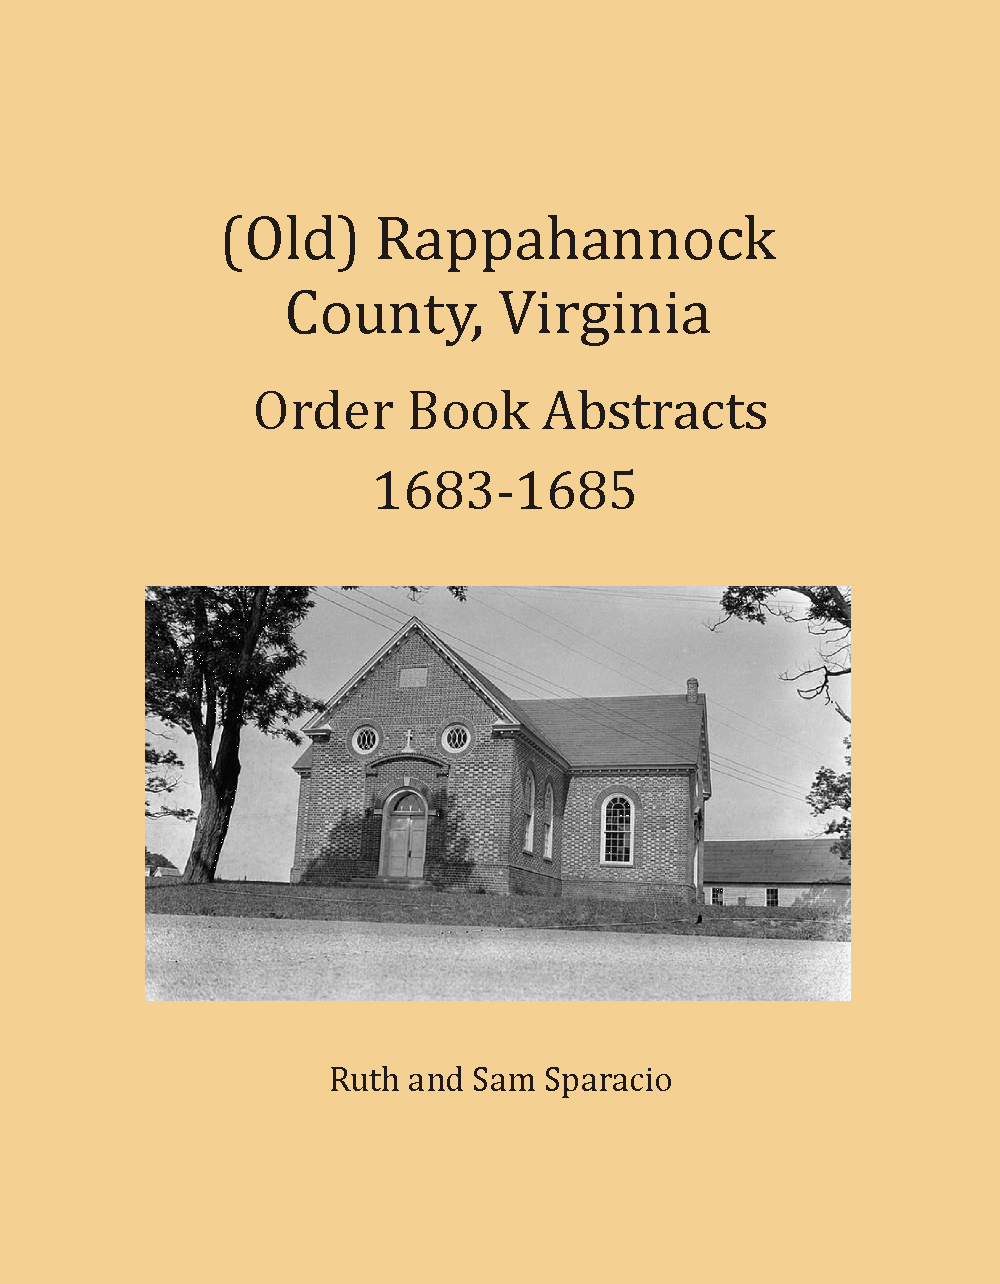 (Old) Rappahannock County, Virginia Order Book Abstracts, 1683-1685